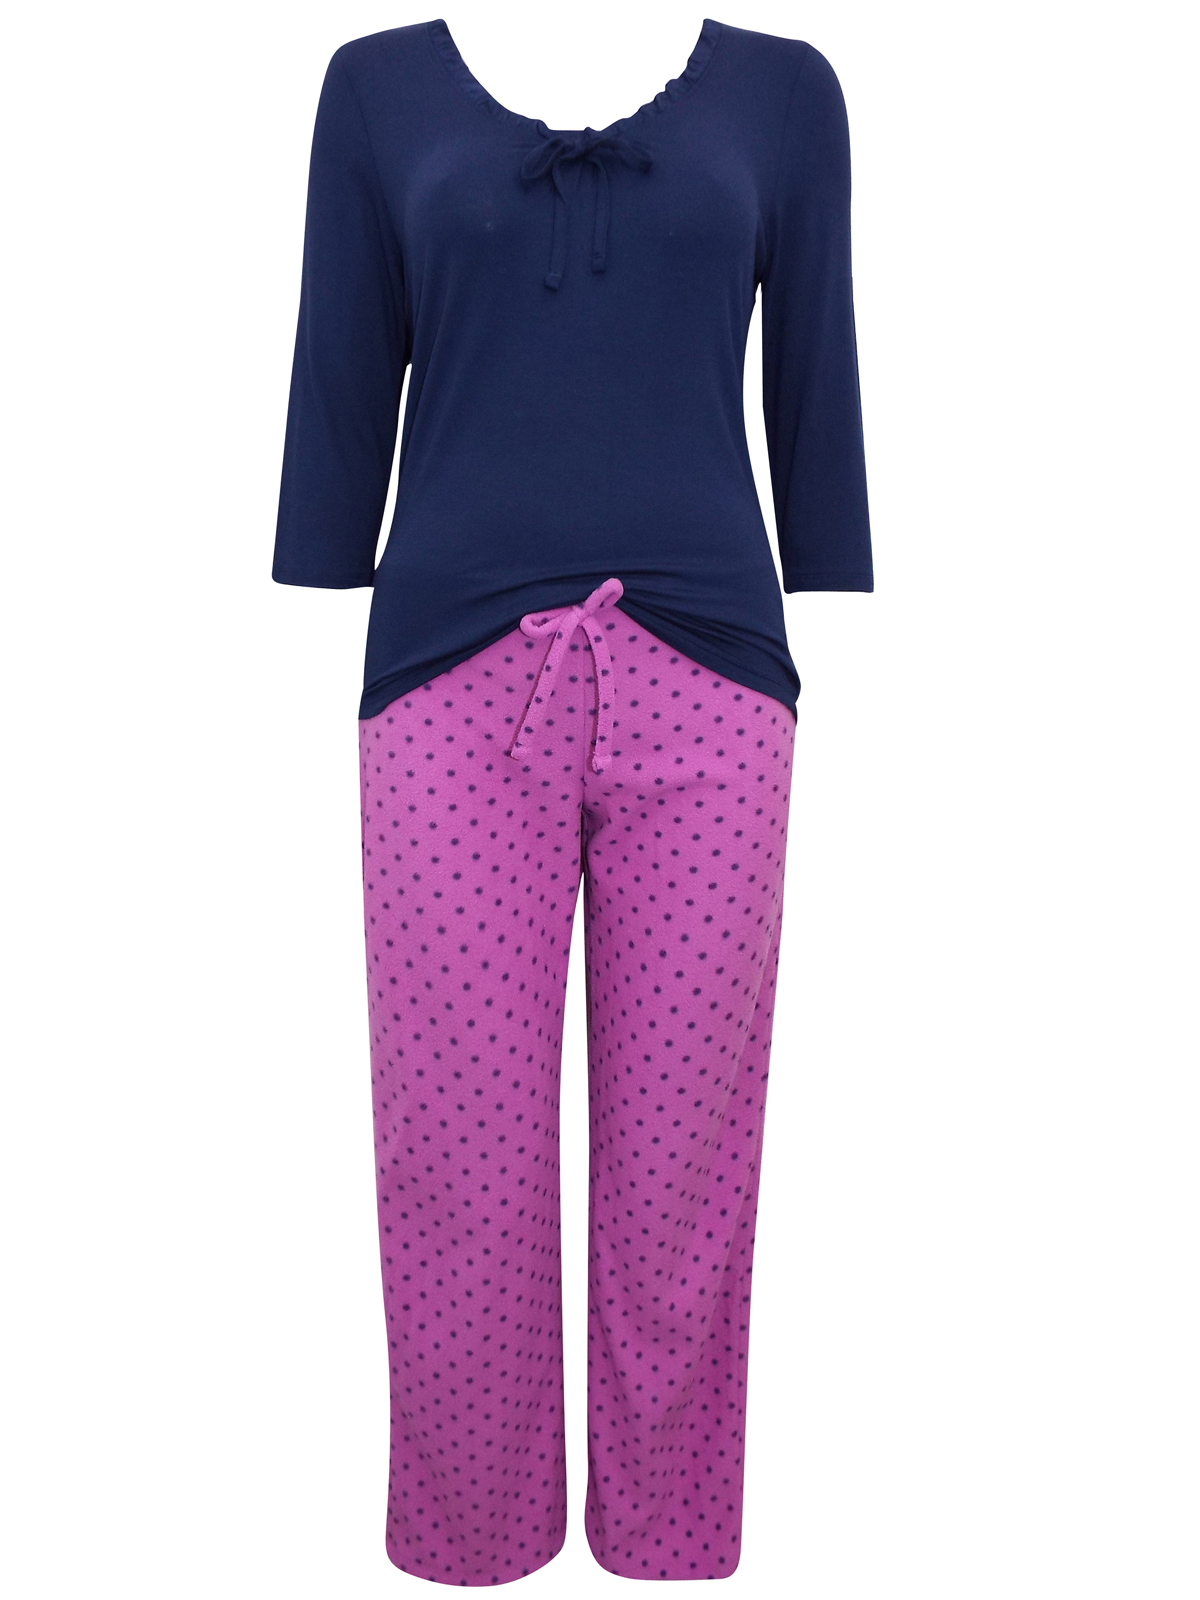 marks and spencer pyjamas size guide